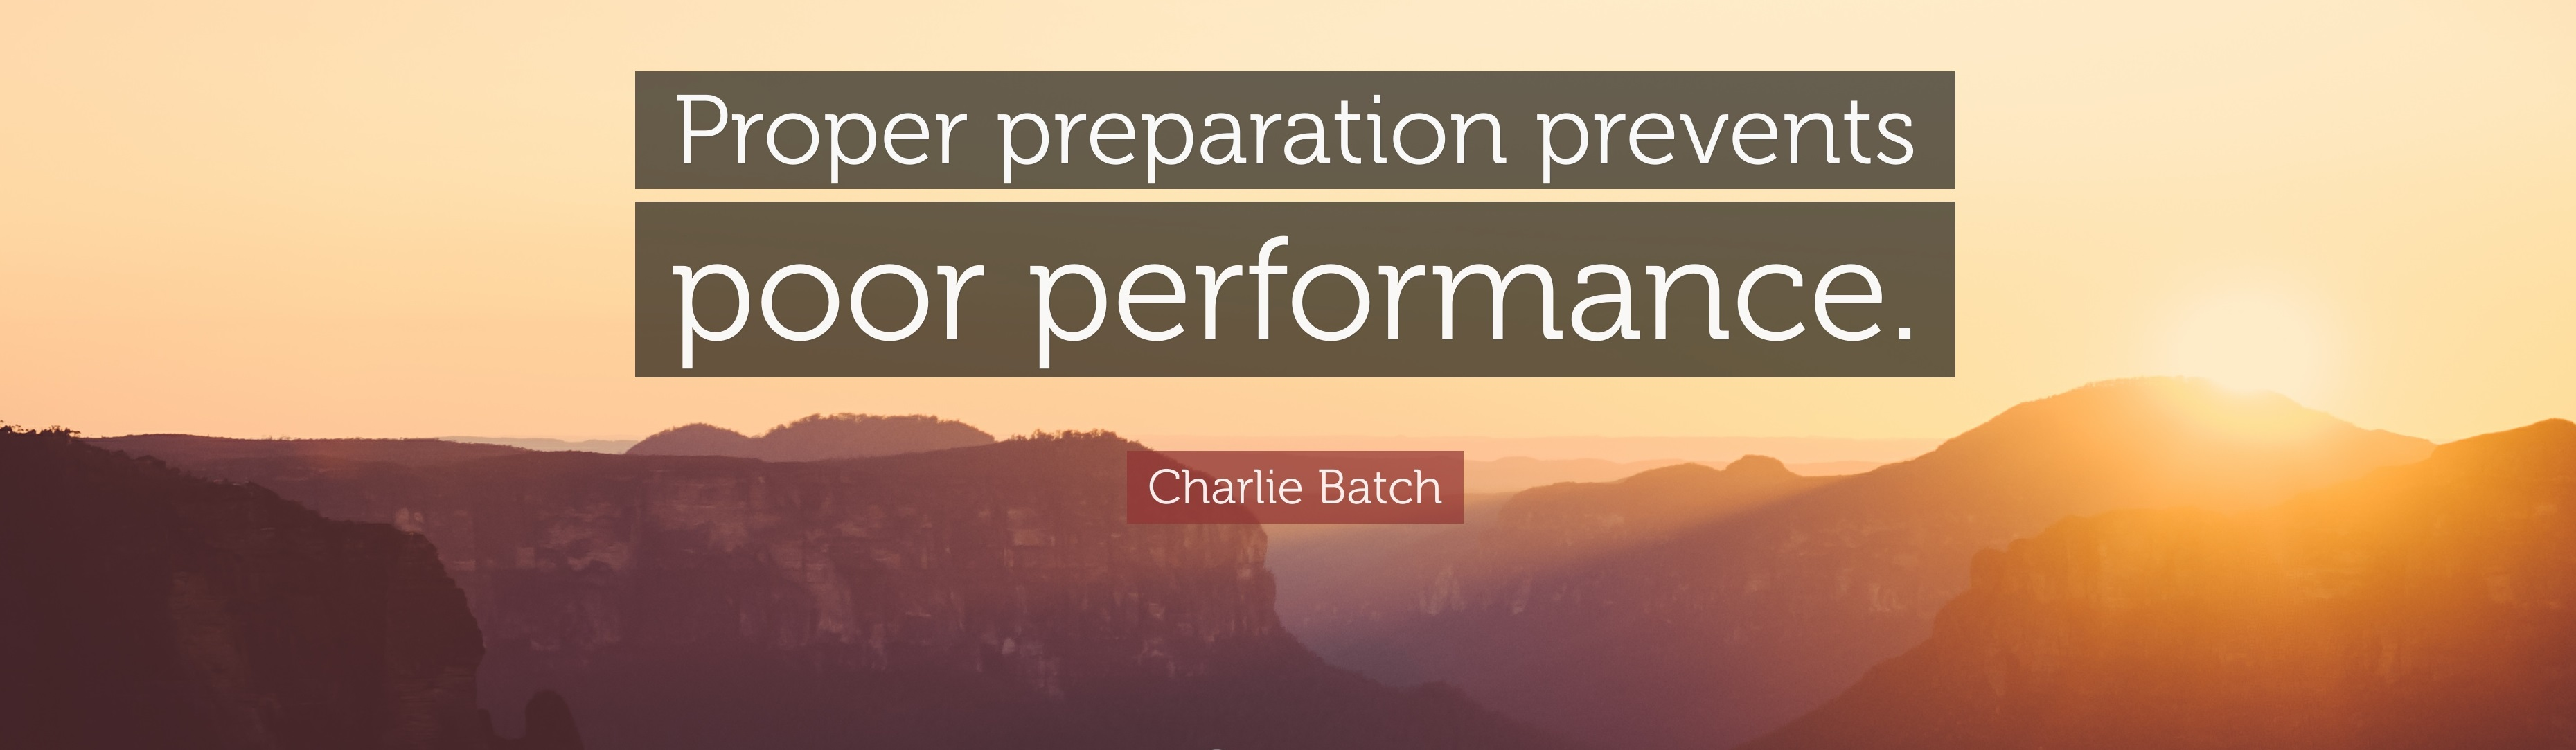 1661788-charlie-batch-quote-proper-preparation-prevents-poor-performance